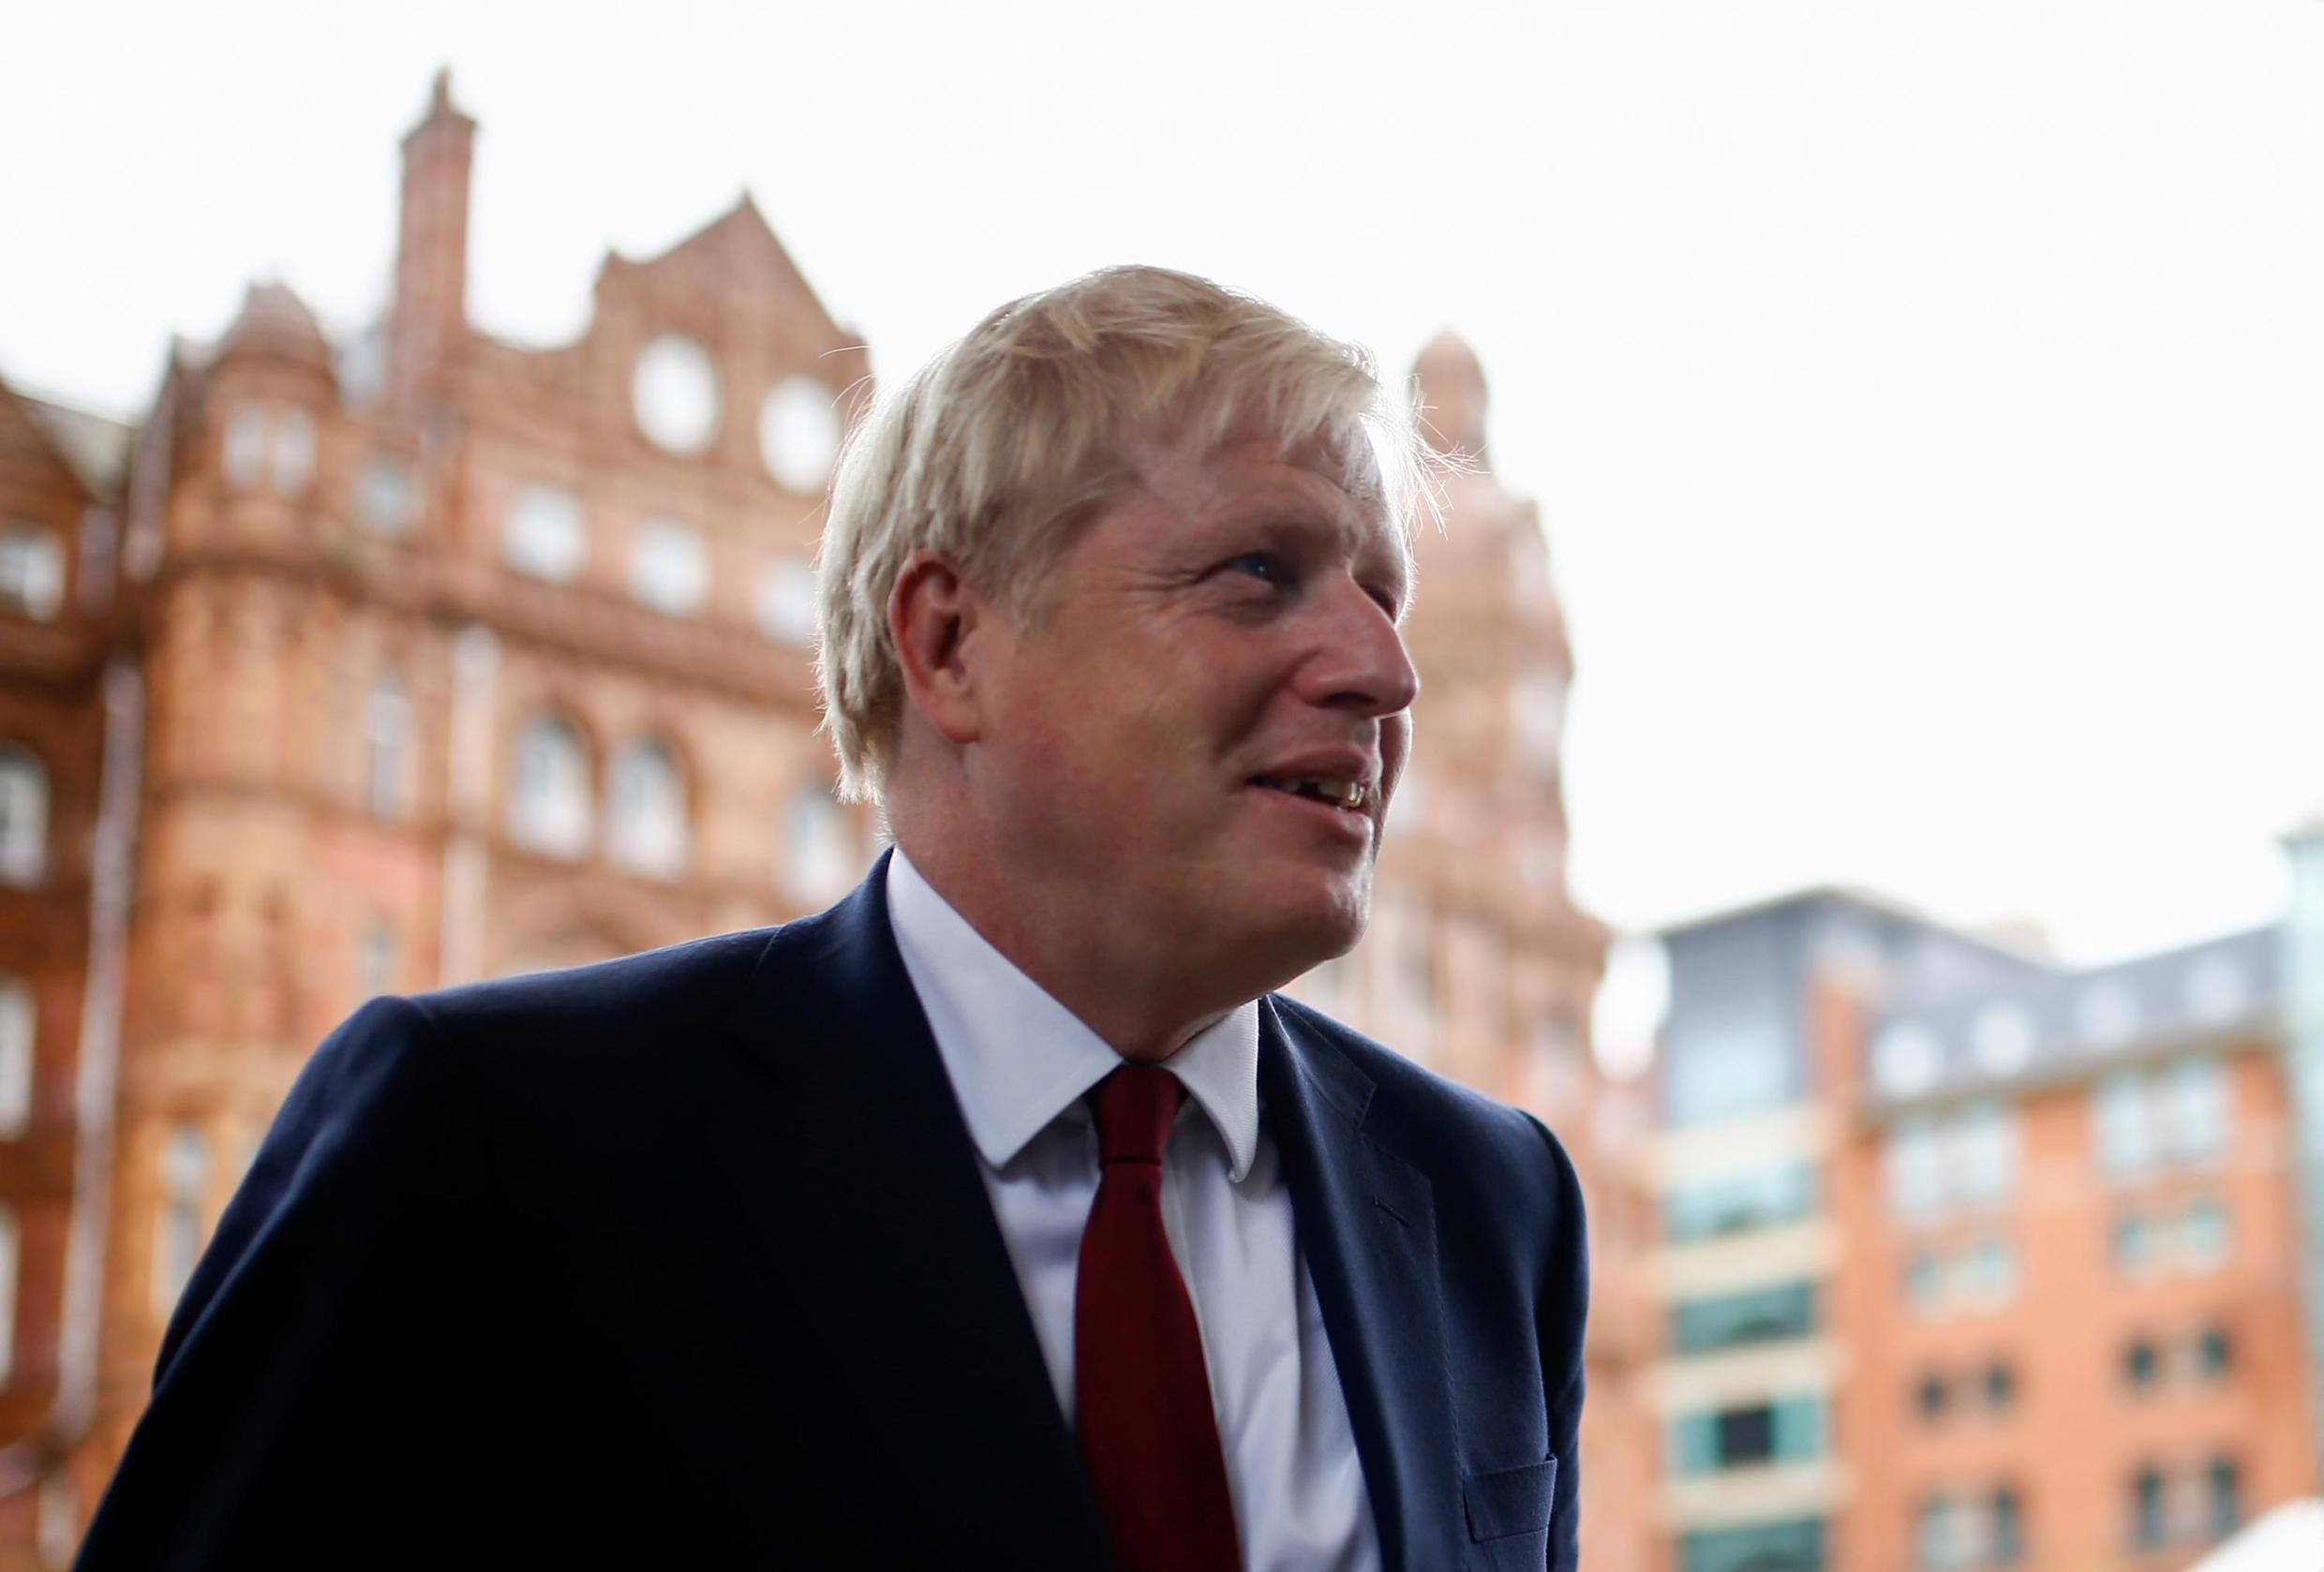 Britain's Prime Minister Boris Johnson is seen outside the venue for the Conservative Party annual conference in Manchester, Britain, September 30, 2019.